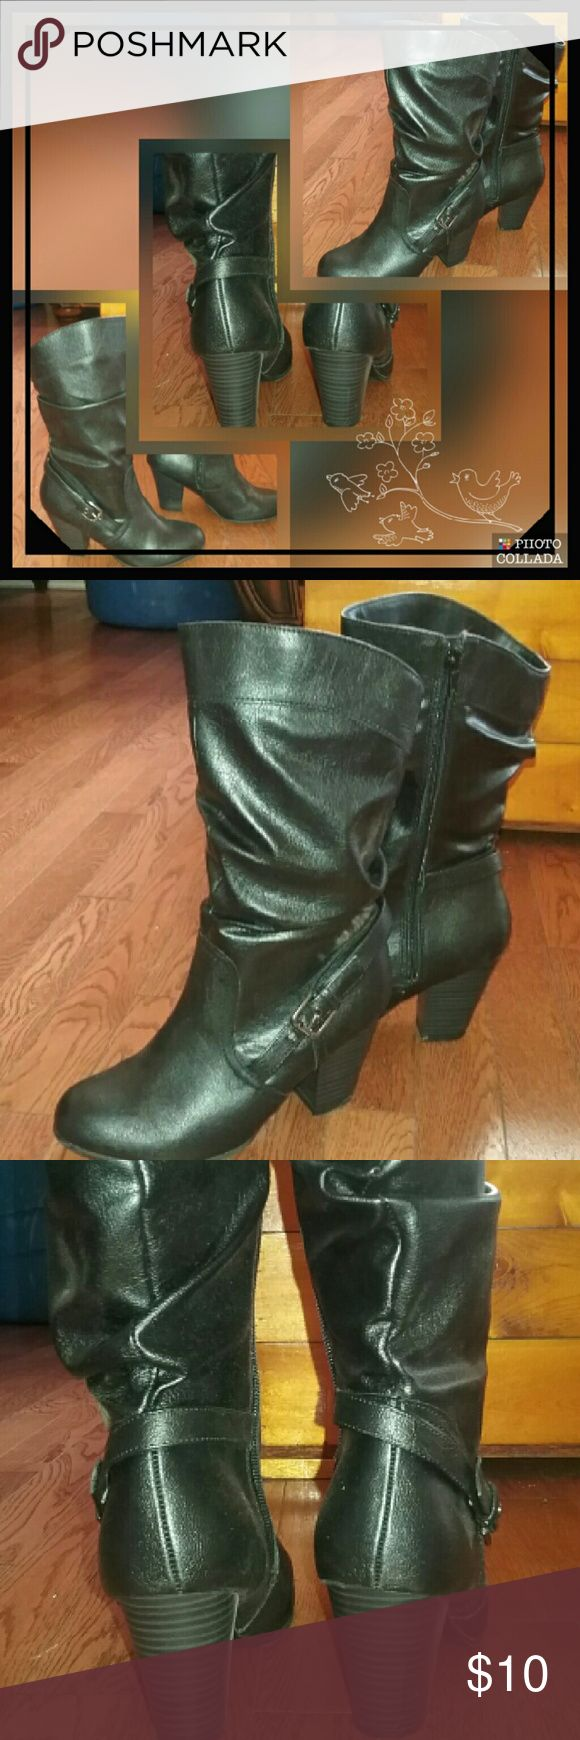 Ladies black boot, worn once only Black boot, side zip,  buckle,  chunk heel Shoes Heeled Boots